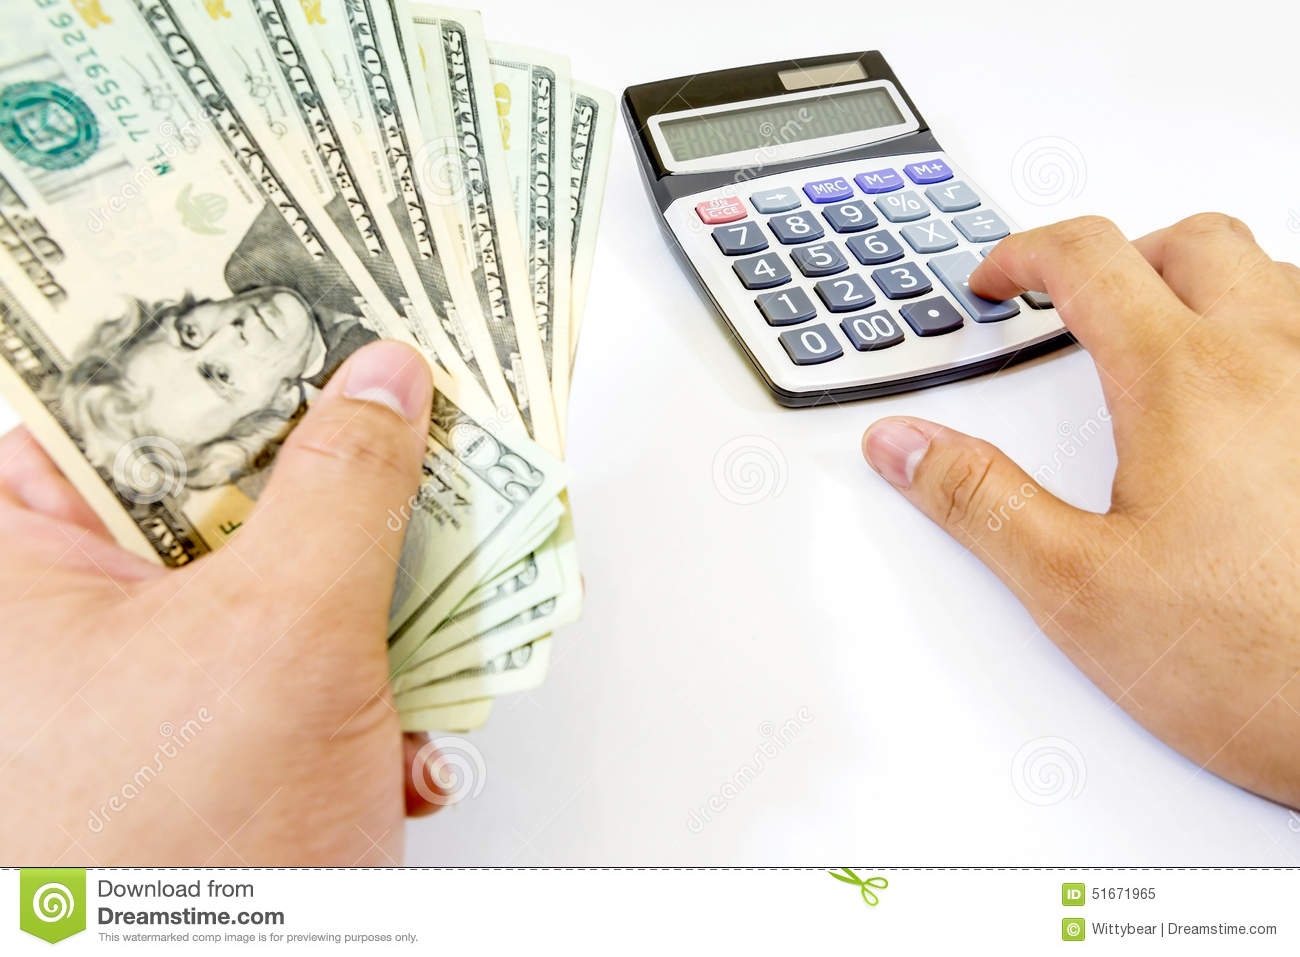 banking money and finance essay Our custom essay help on banking and finance law serve the purpose of struggling students affordable price rates along with special discounts to loyal customers.